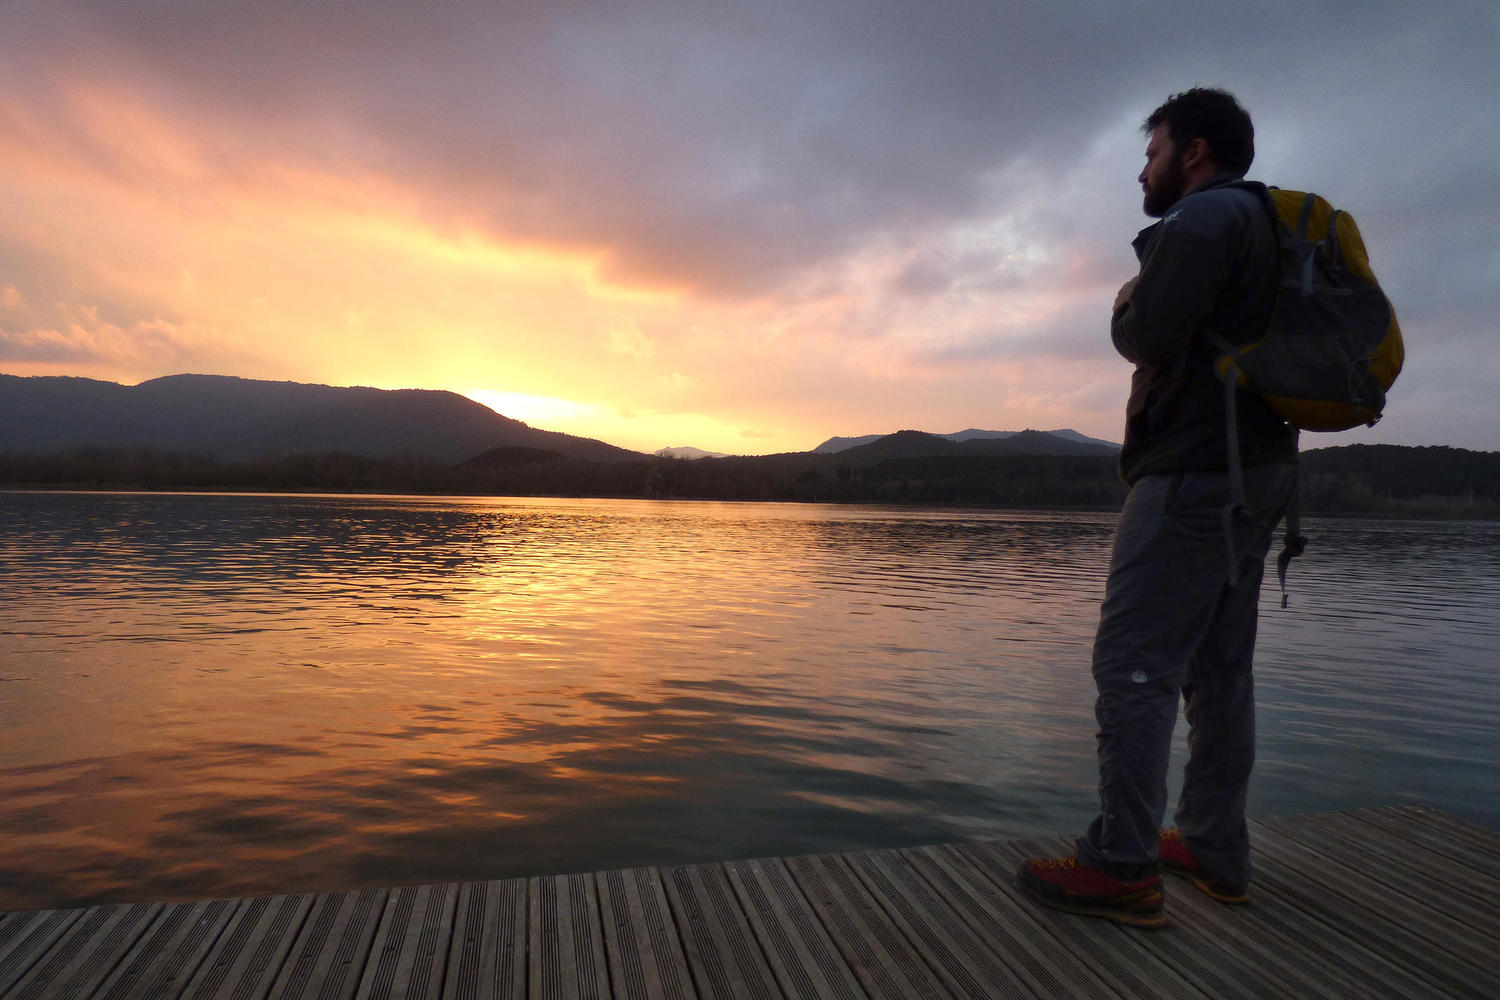 Hiking around the Banyoles lake at sunset